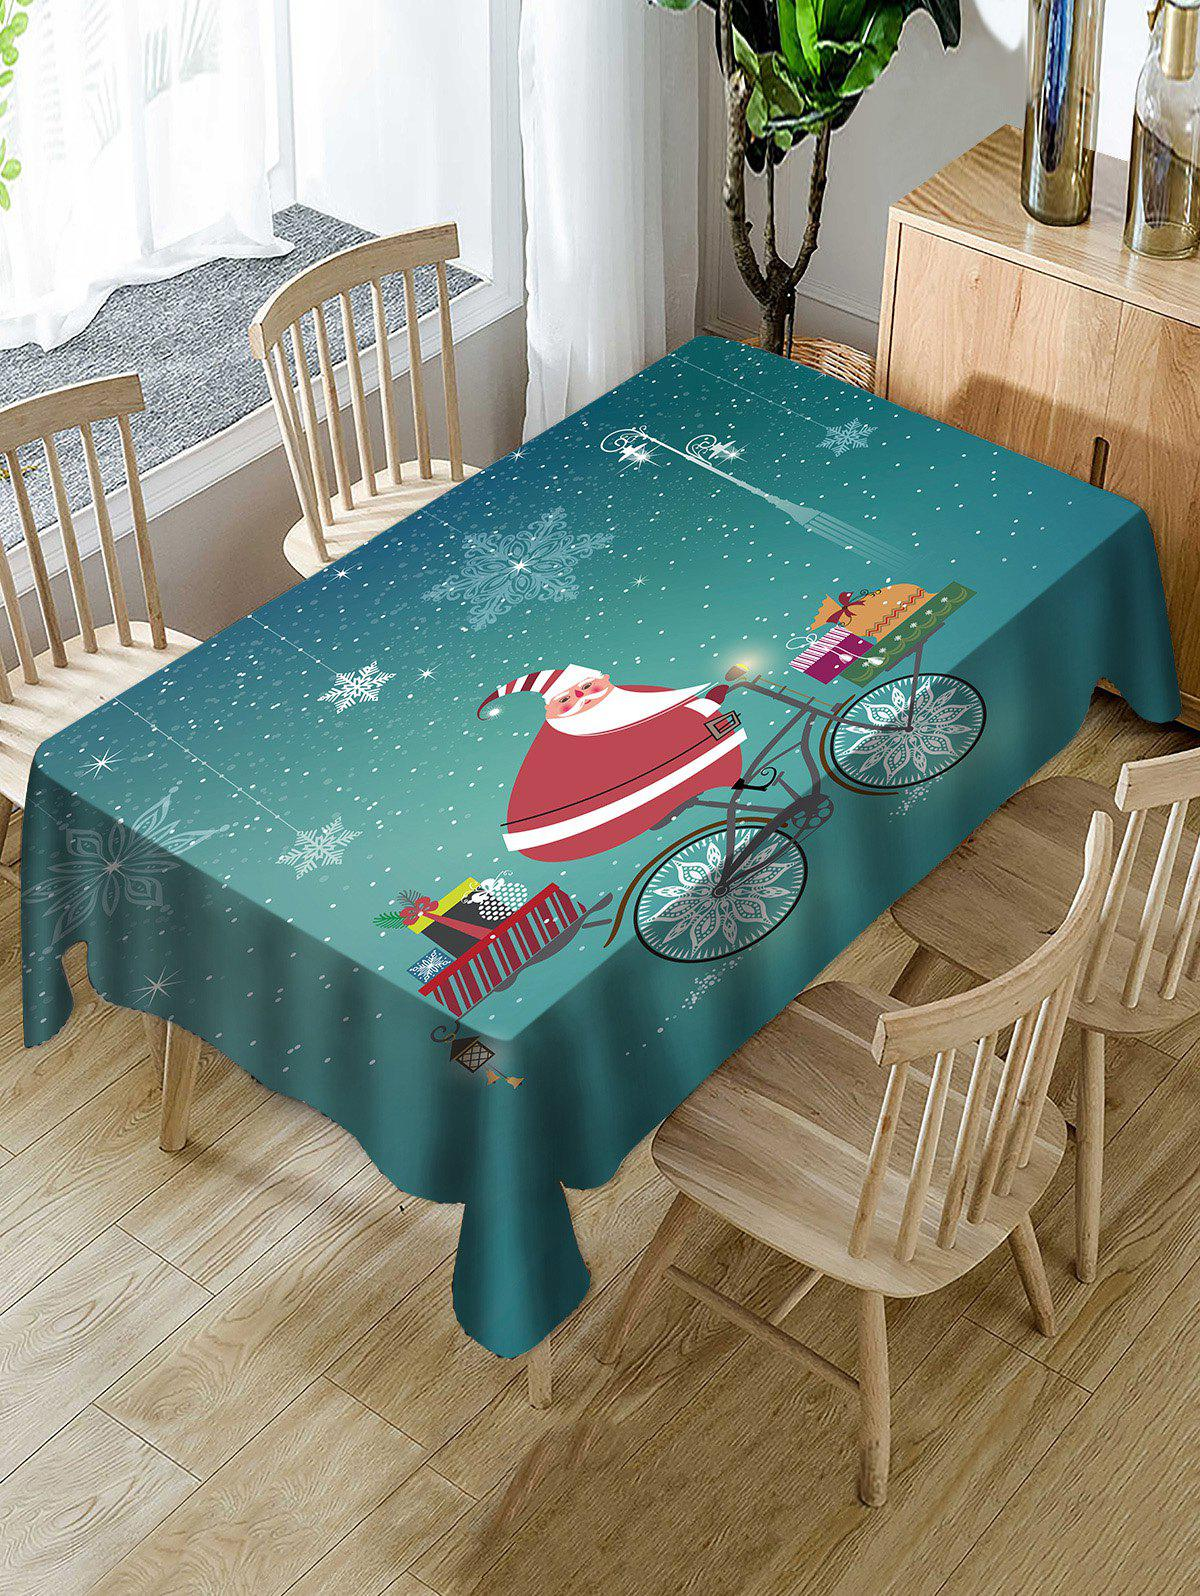 Affordable Christmas Santa Claus Gifts Print Fabric Waterproof Tablecloth